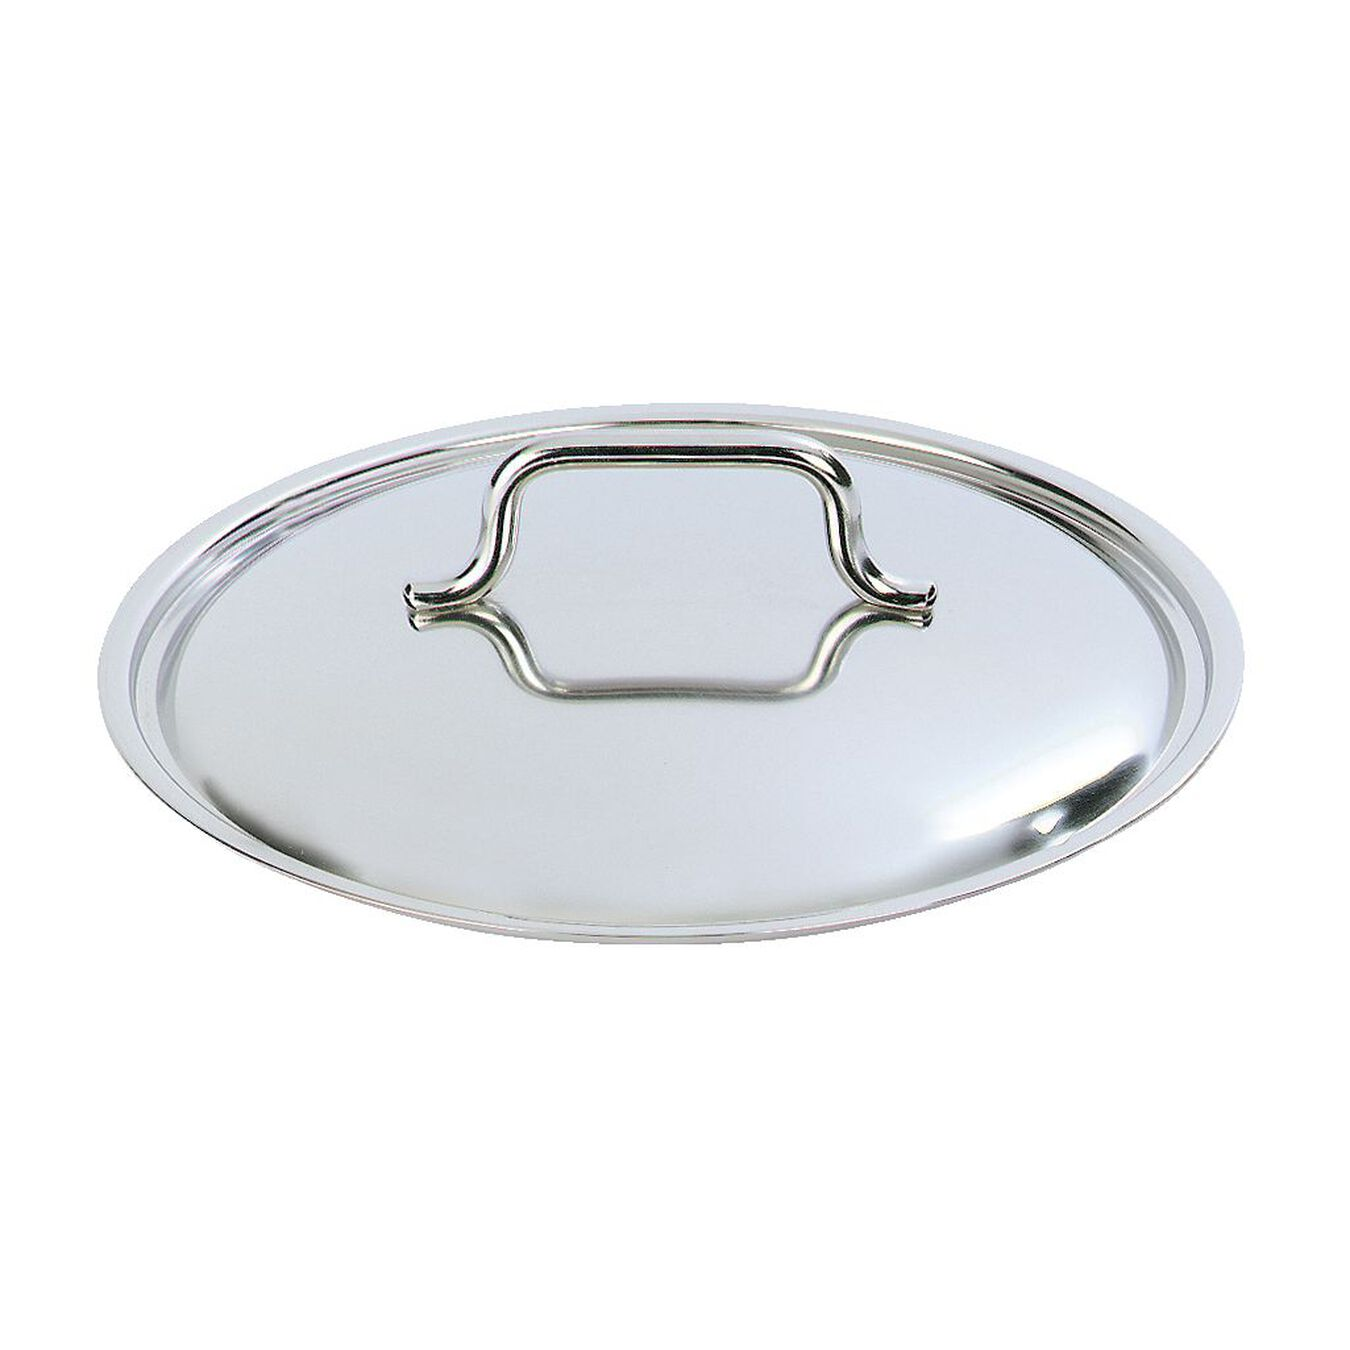 Couvercle 36 cm Inox 18/10,,large 1